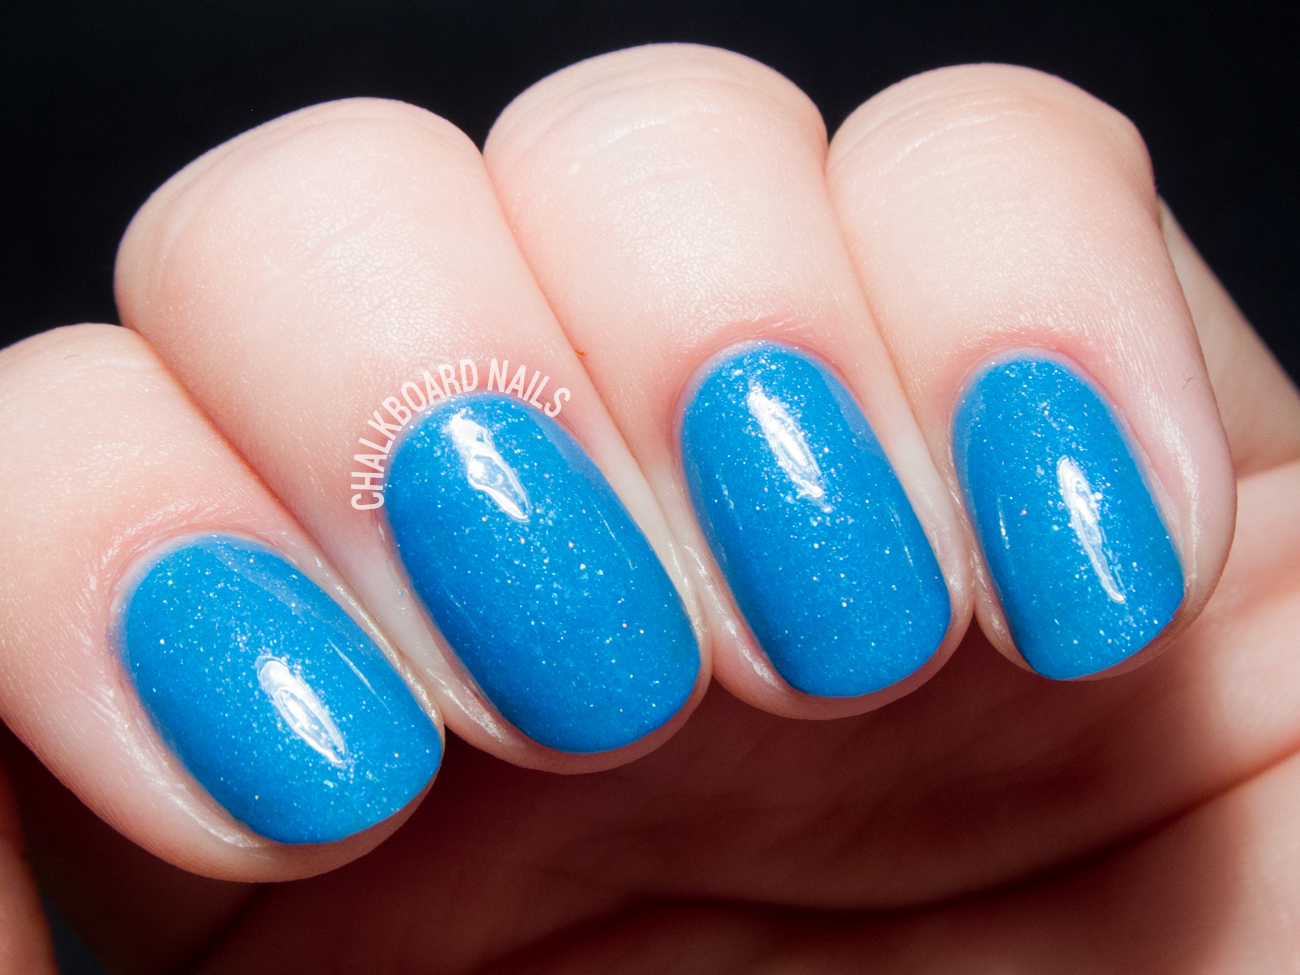 Serum No. 5 Glo-balt Blue via @chalkboardnails